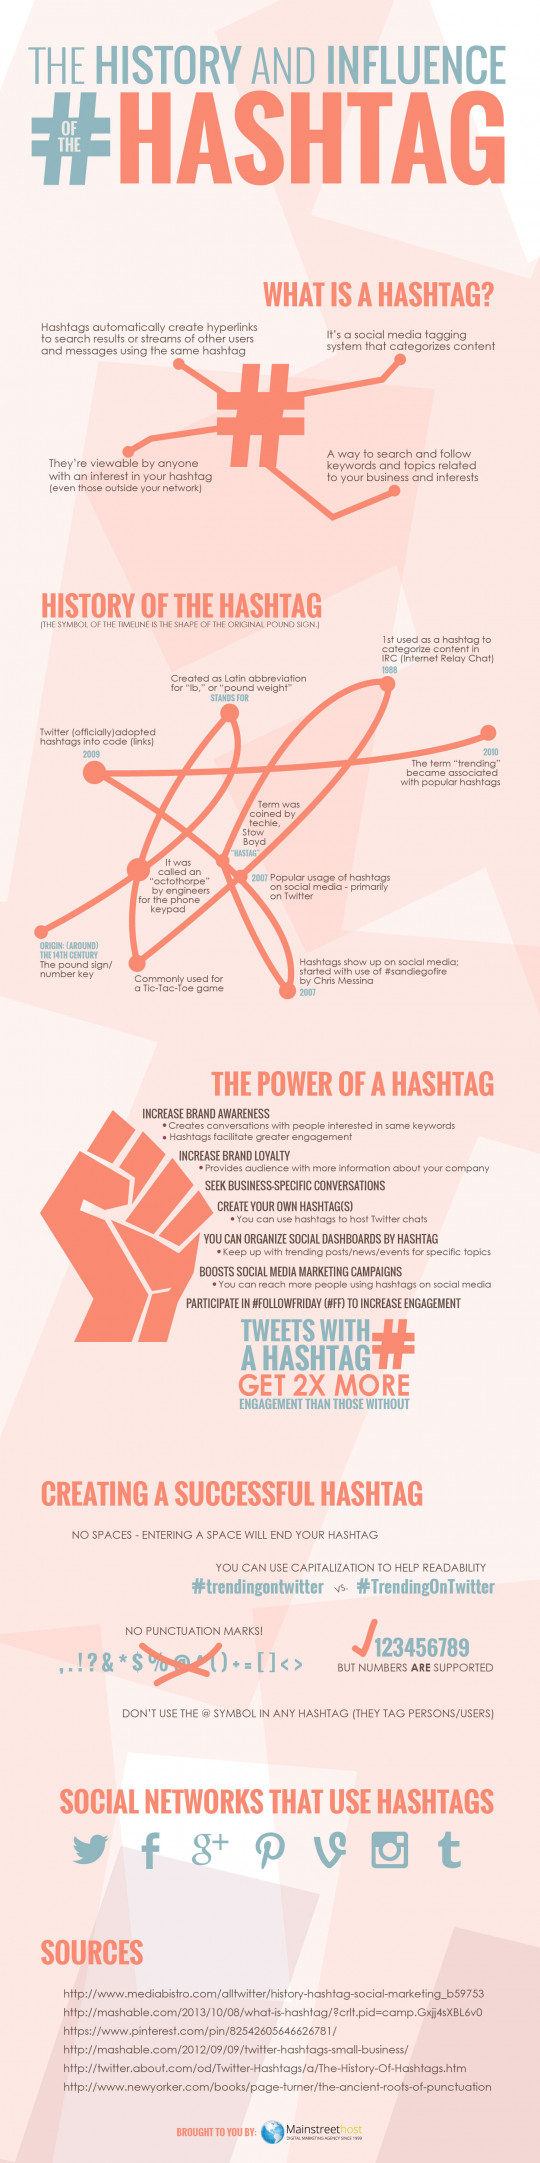 The History and Influence of the Hashtag